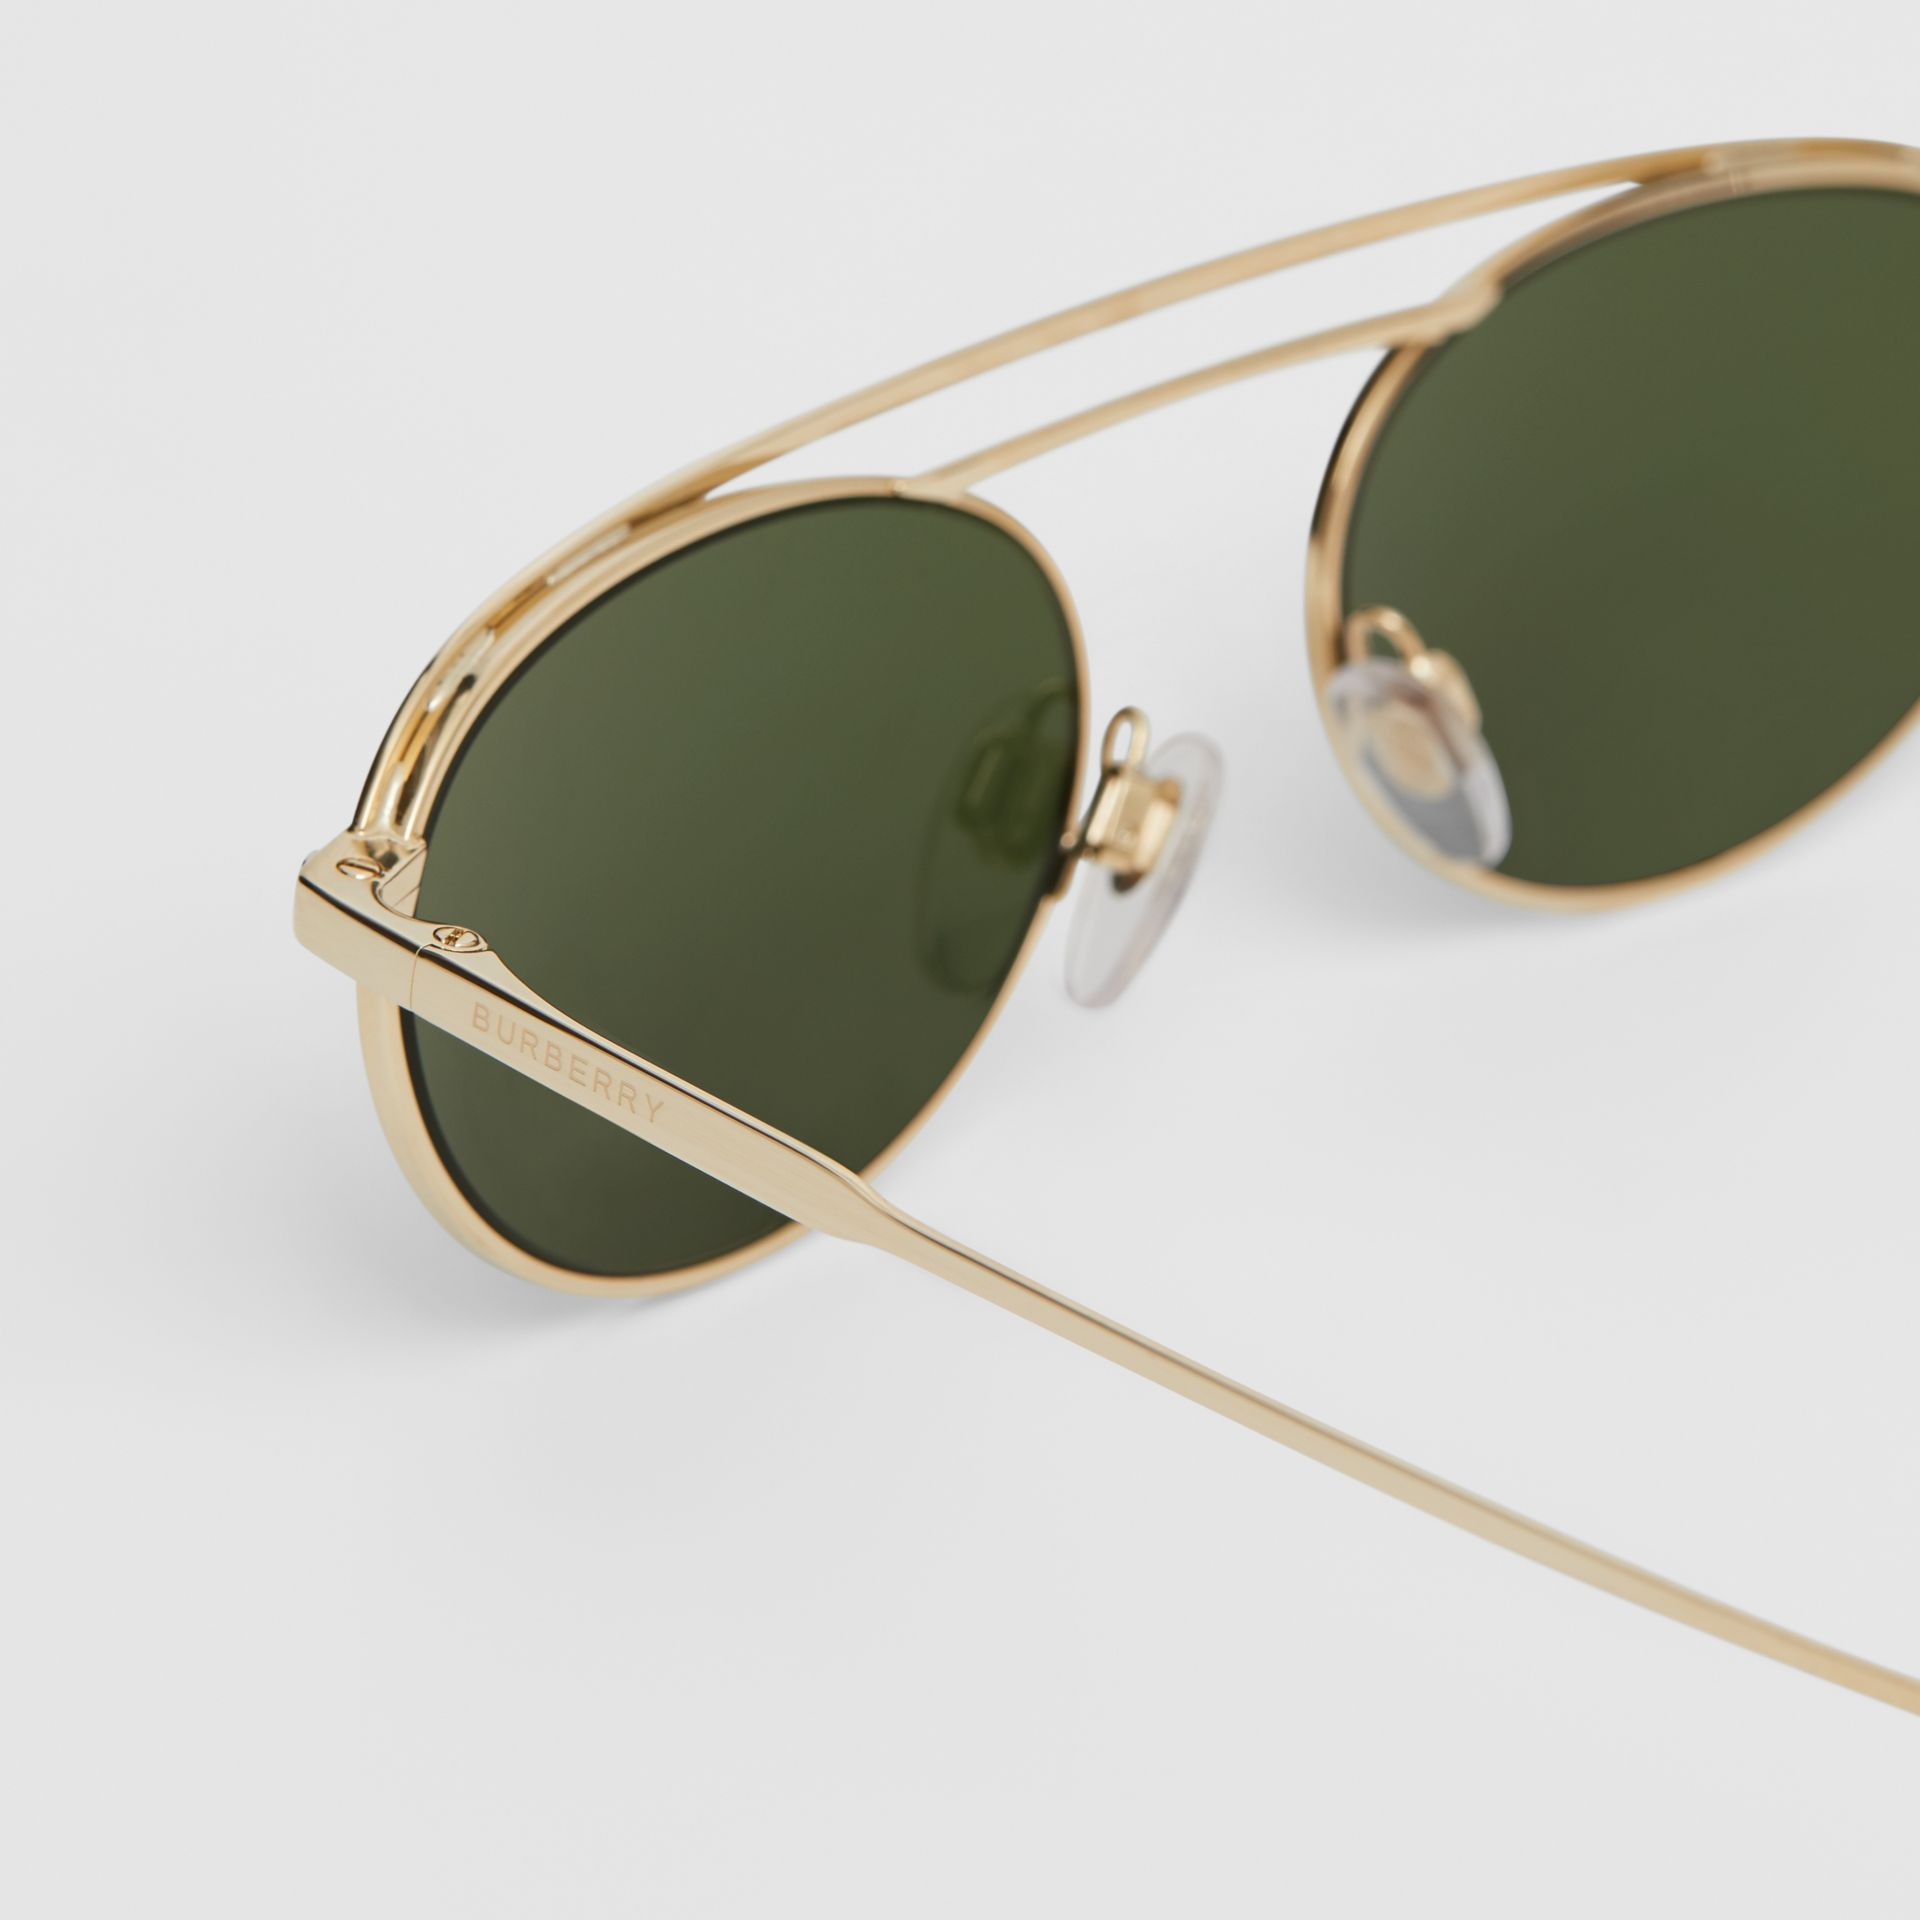 Oval Frame Sunglasses in Green - Women | Burberry - gallery image 1